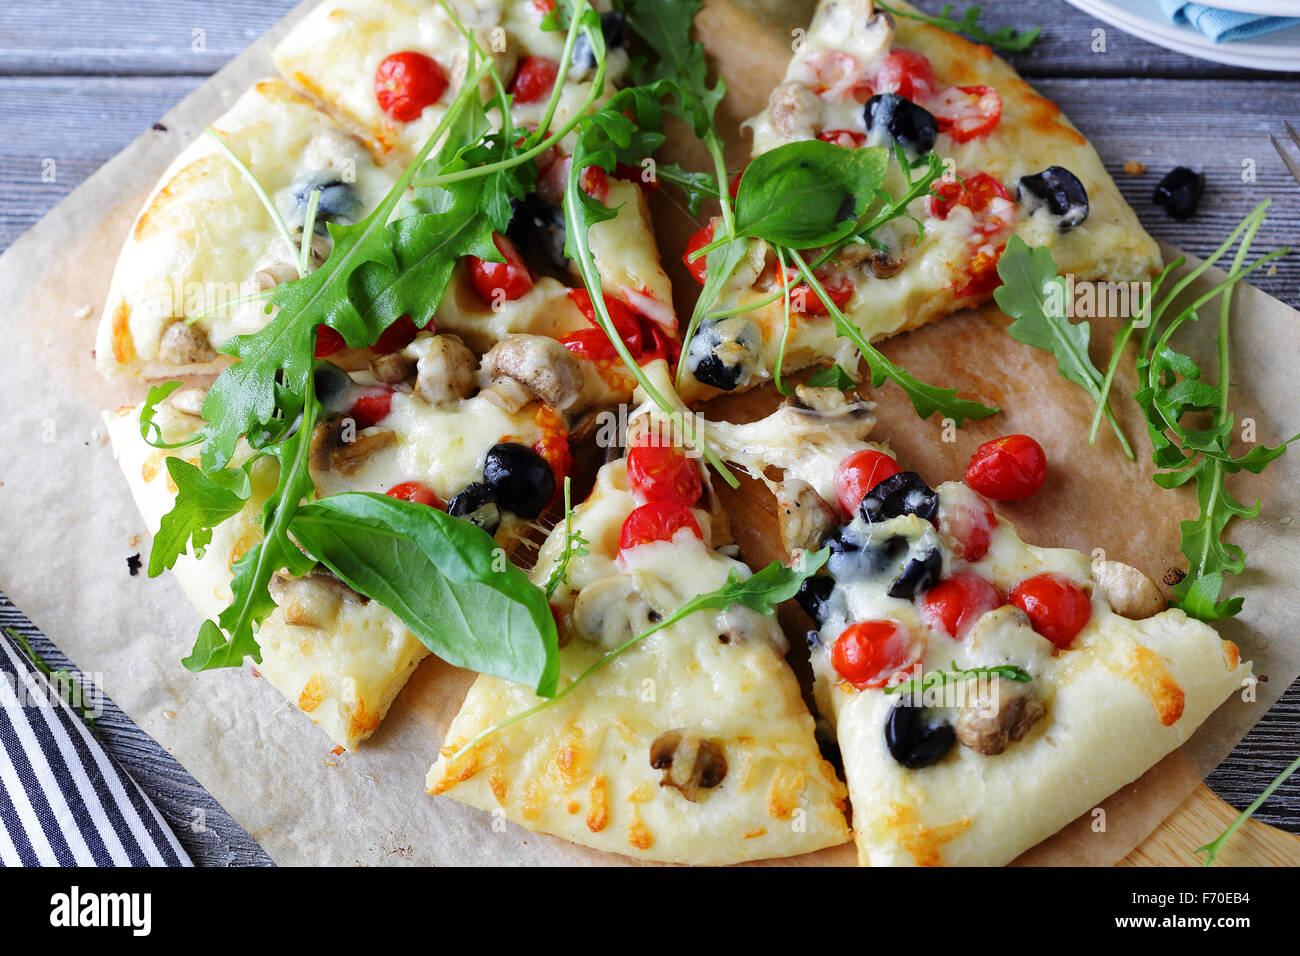 hot pizza with mushrooms and herbs - Stock Image